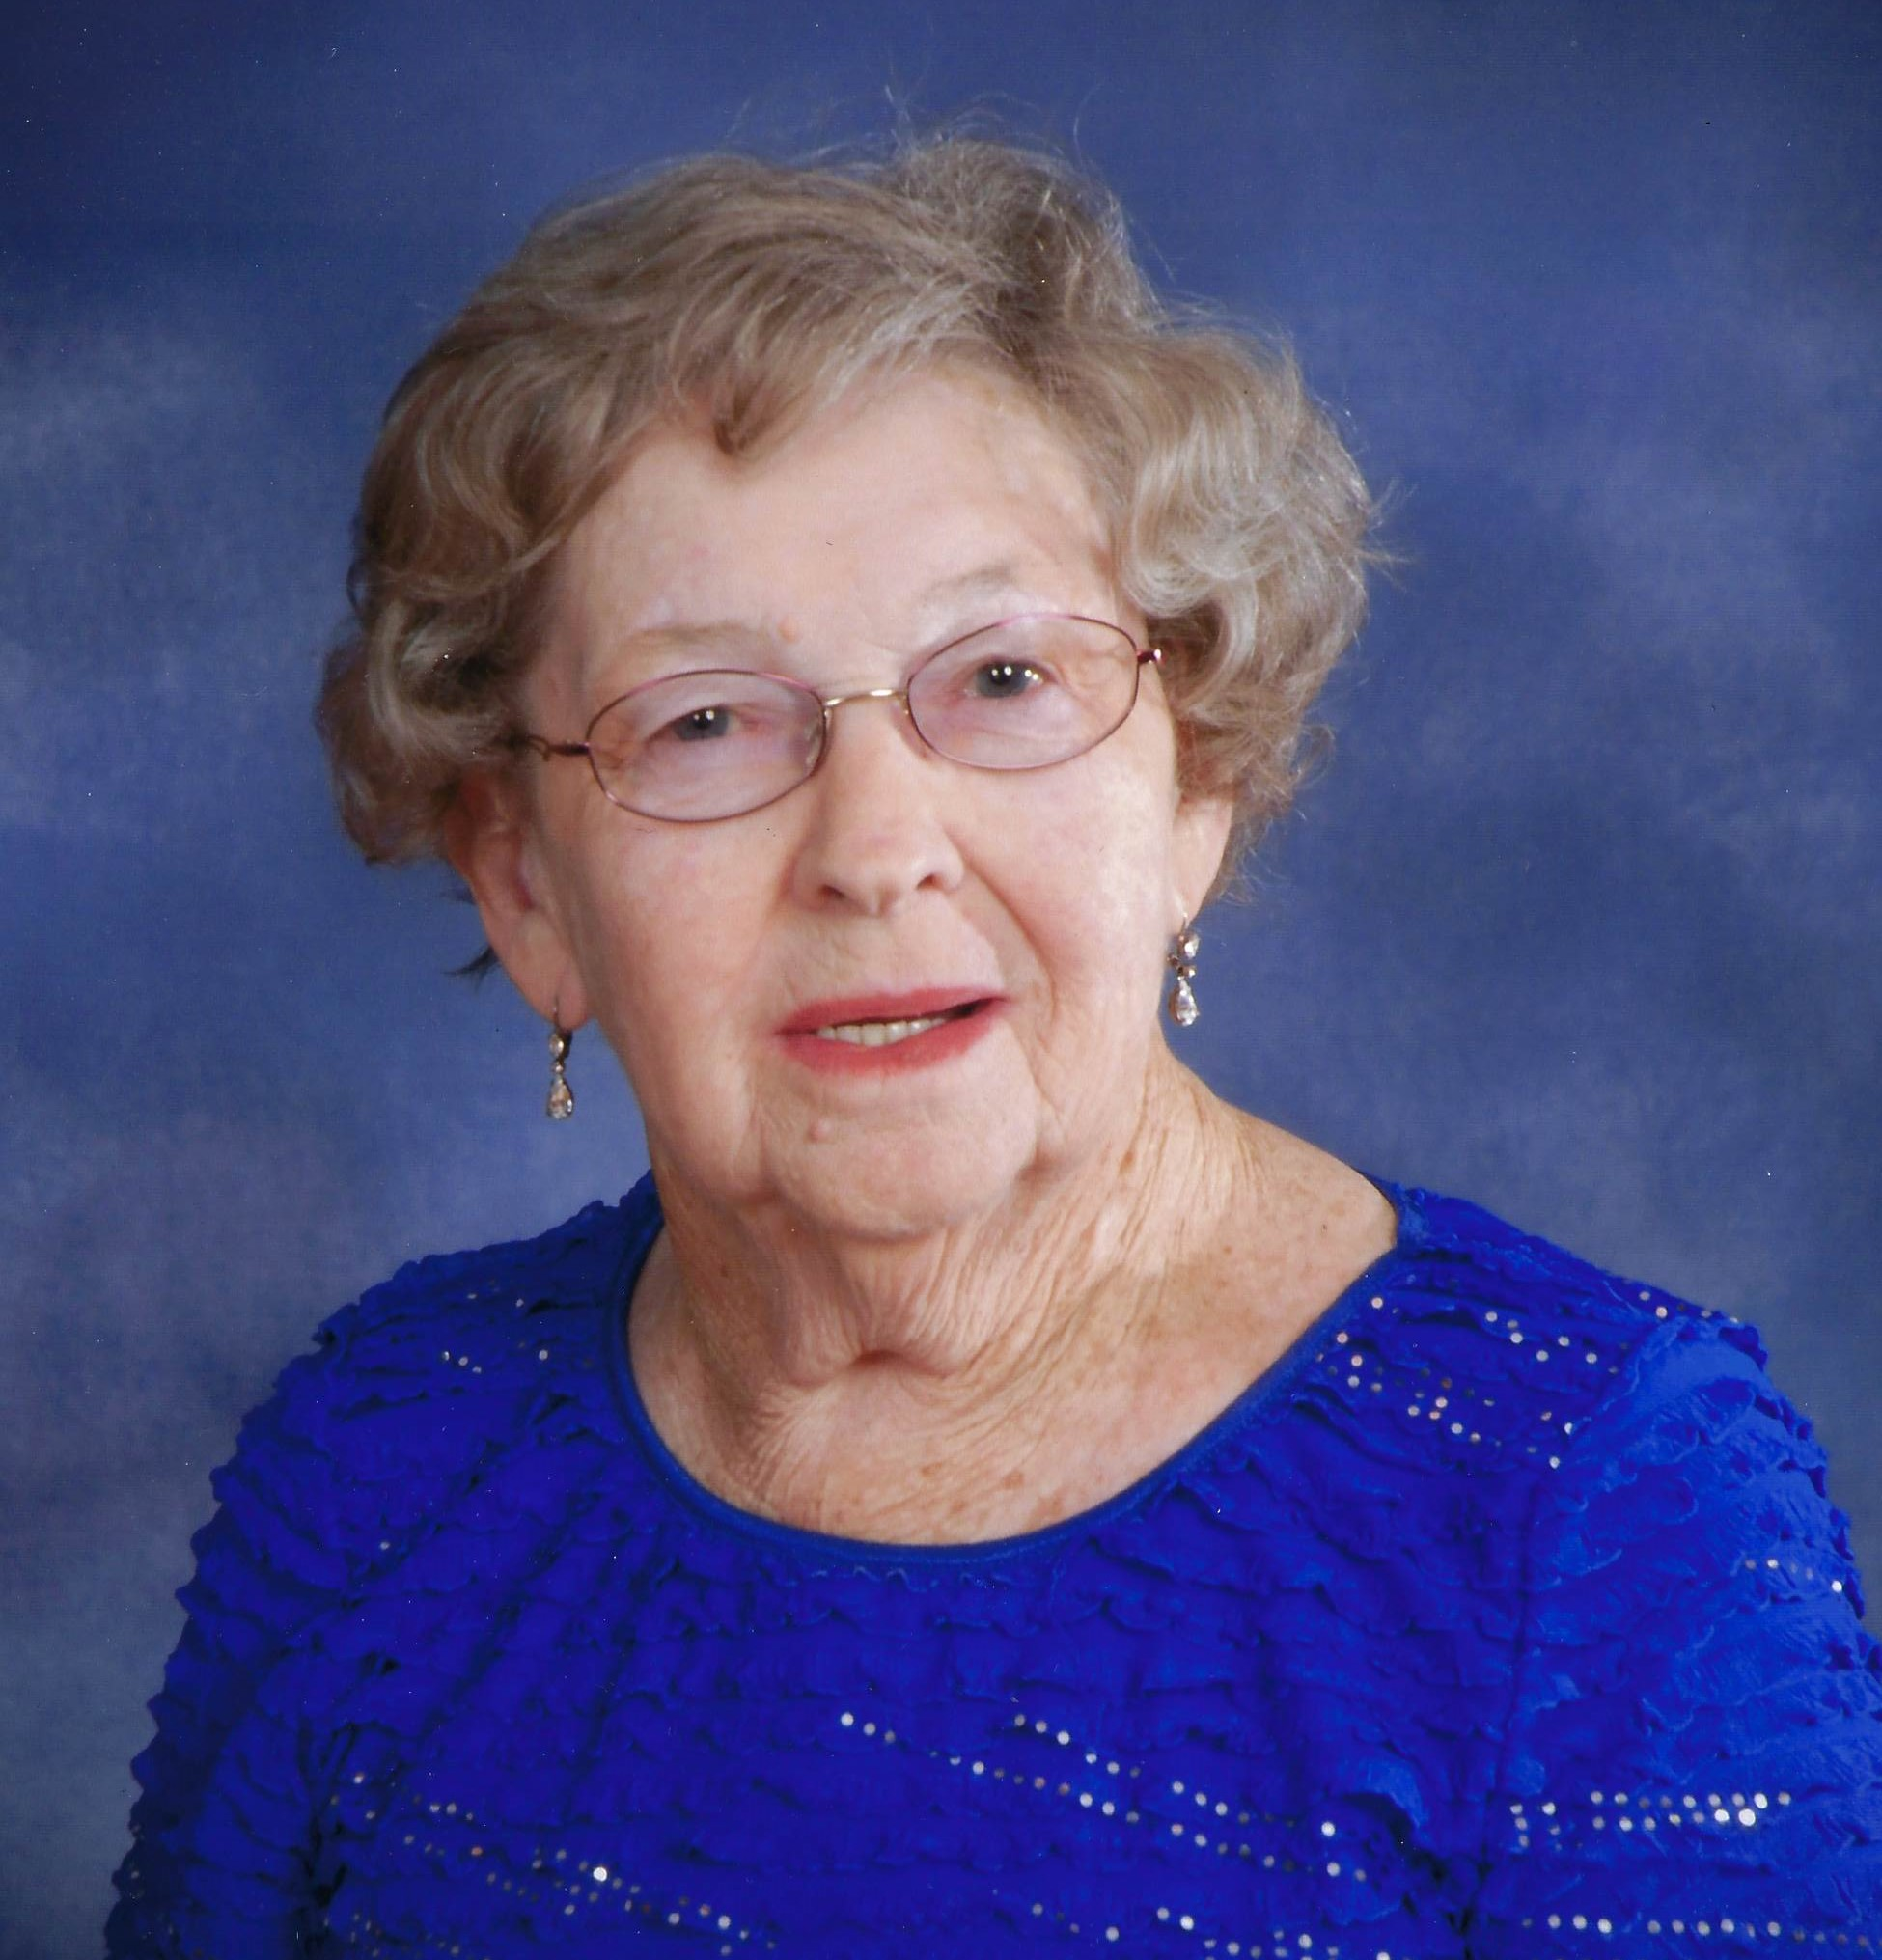 Obituary image of Emma Joann Tew Spivey